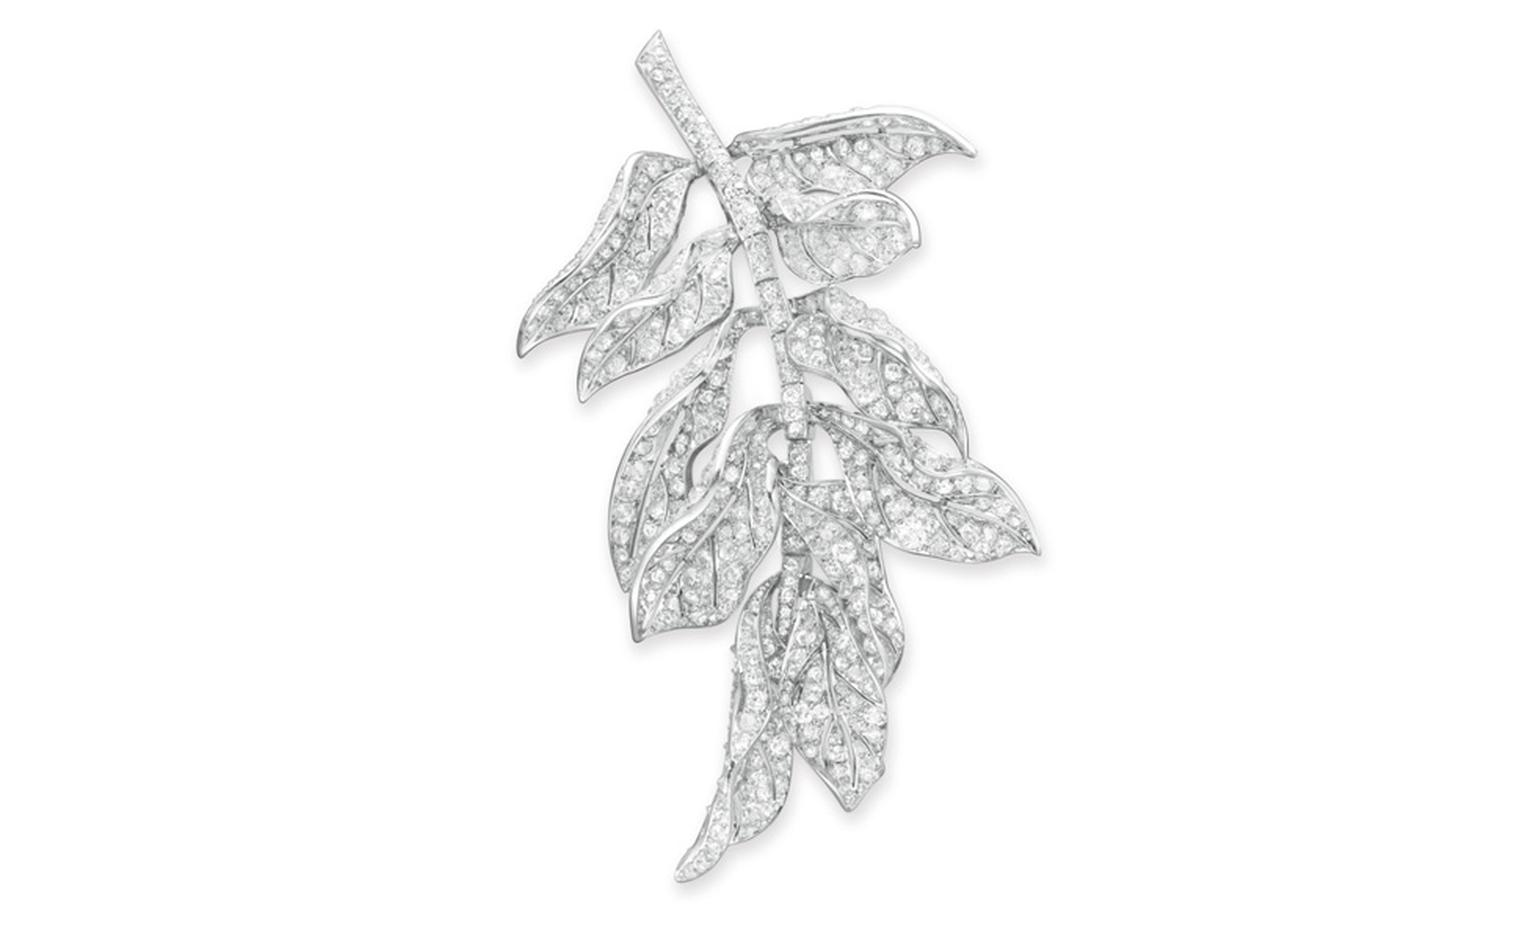 LOT 53 A DIAMOND AND PLATINUM BROOCH  Designed as an articulated cluster of old mine, old European and single-cut diamond scrolling leaves, to the single-cut diamond stem, mounted in platinum, circa 1940 Likely by Paul Flato Estimate $12,000-$18...